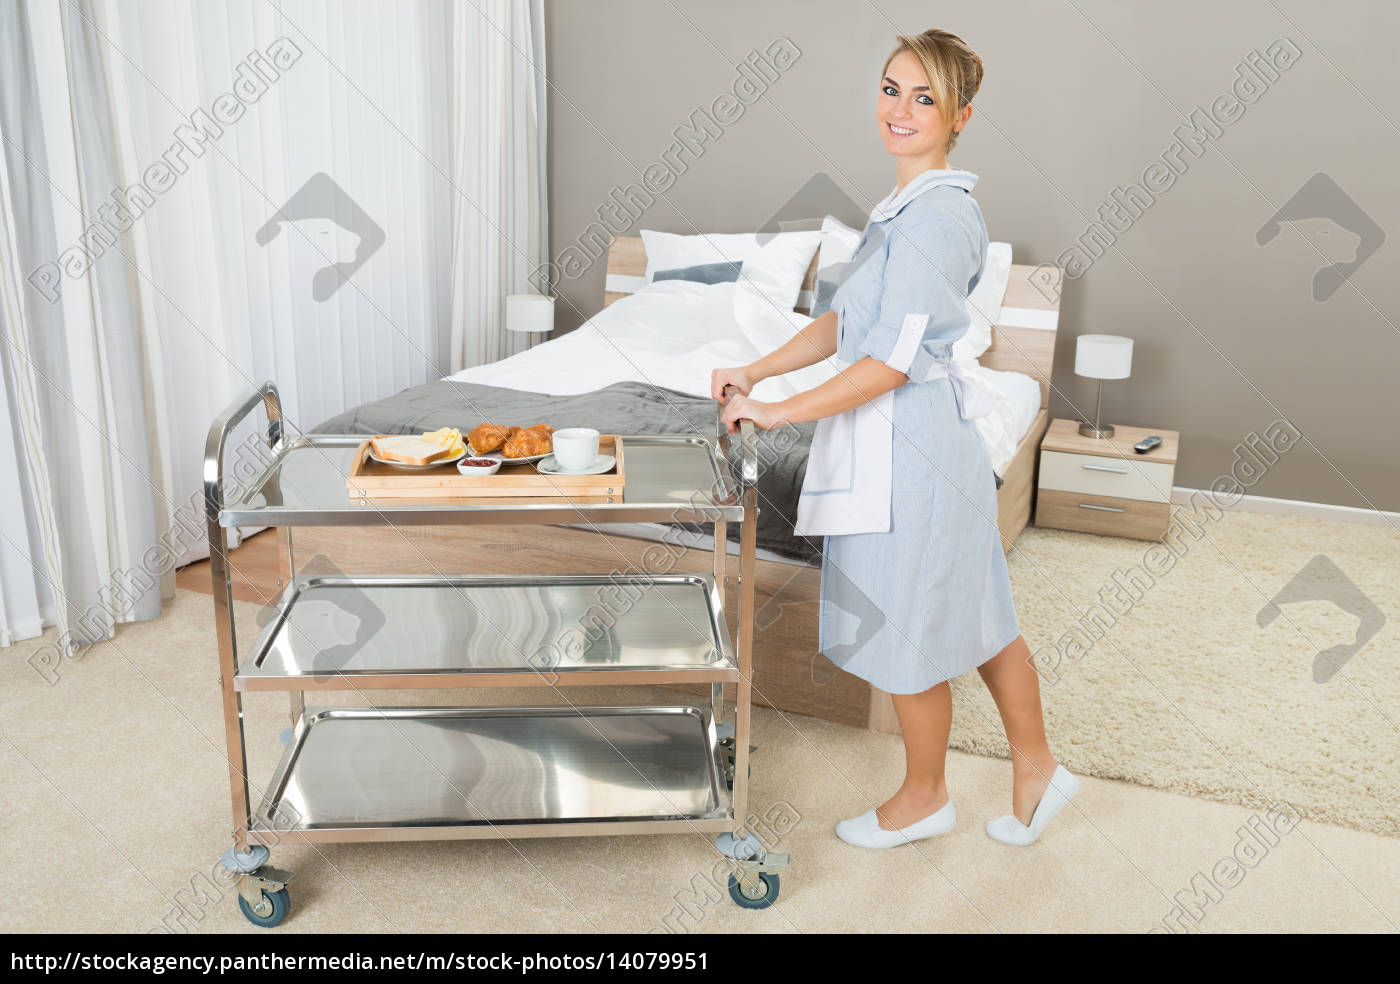 woman, pushing, trolley, with, breakfast - 14079951